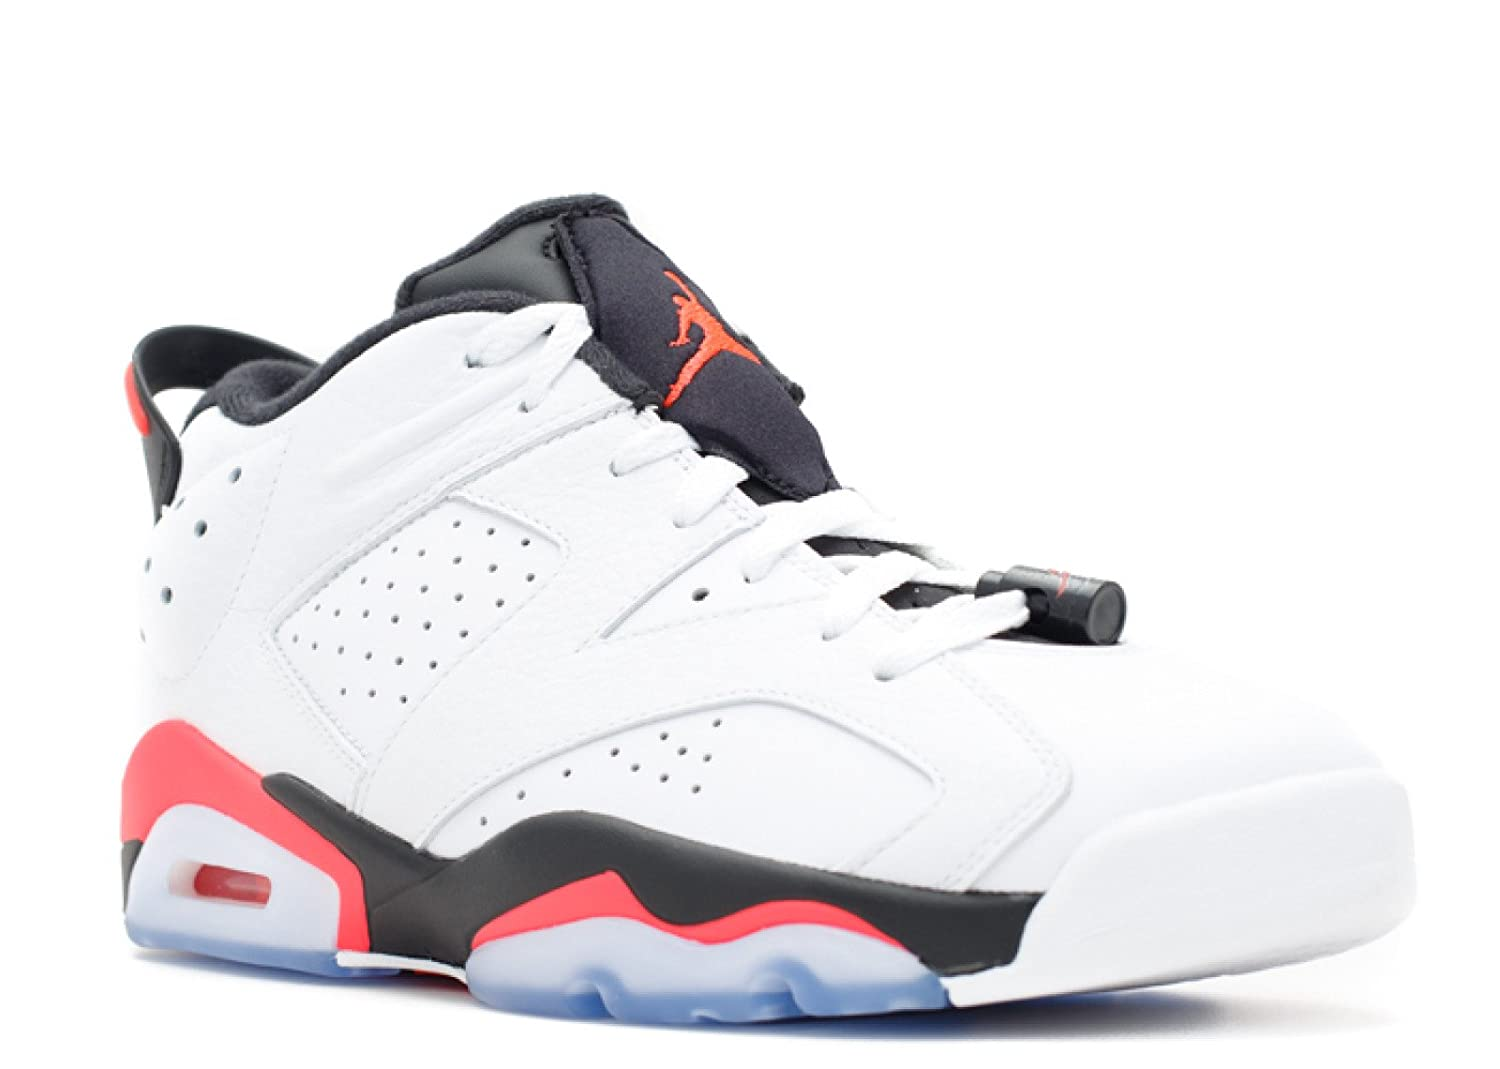 NIKE Air Jordan 6 Retro Low 304401-123 White/Infrared 23/Black Men's Shoes  (Size 14)